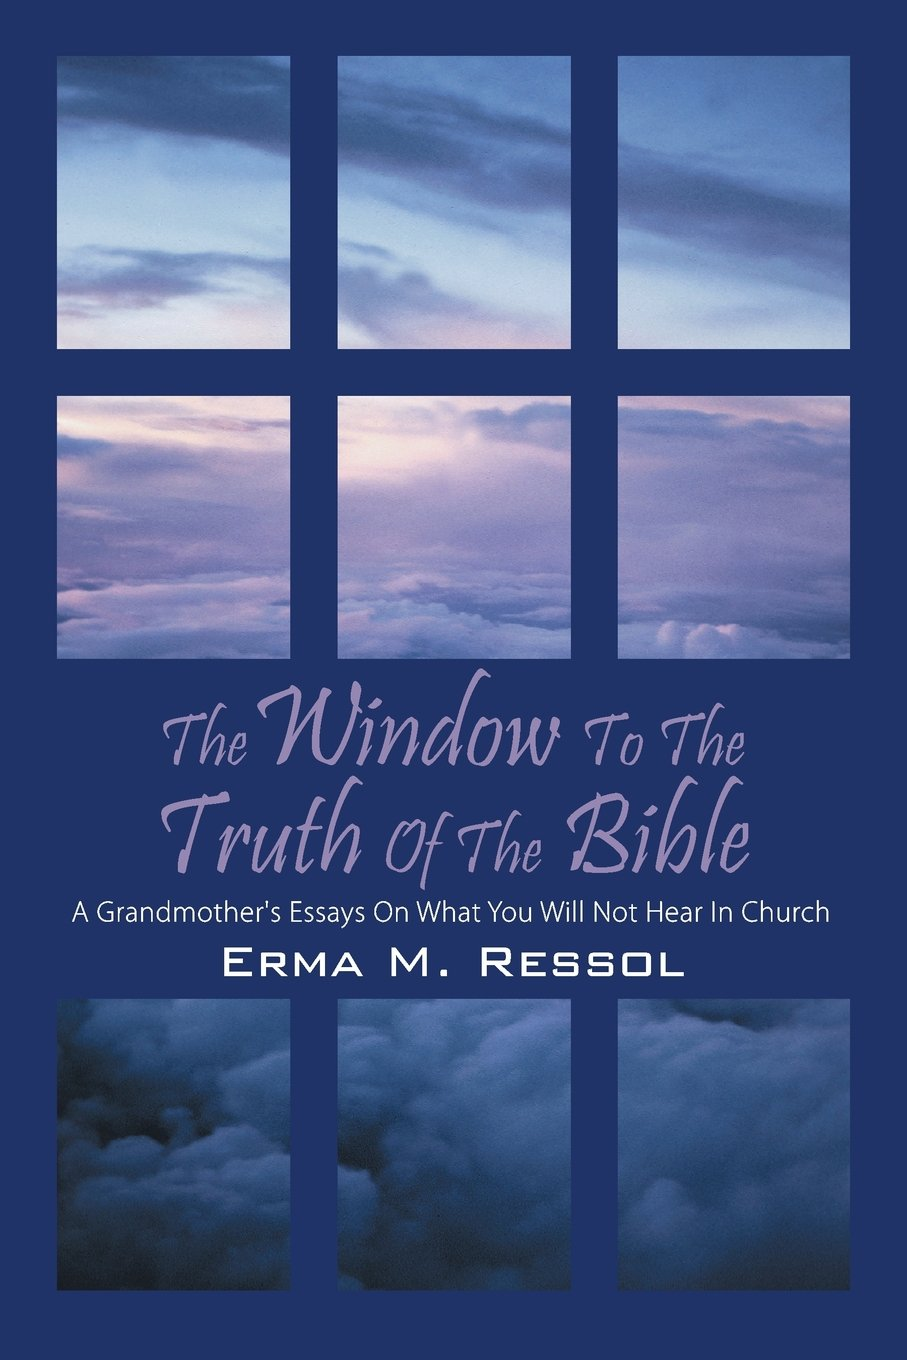 The Window to the Truth of the Bible: A Grandmother's Essays on What You Will Not Hear in Church PDF